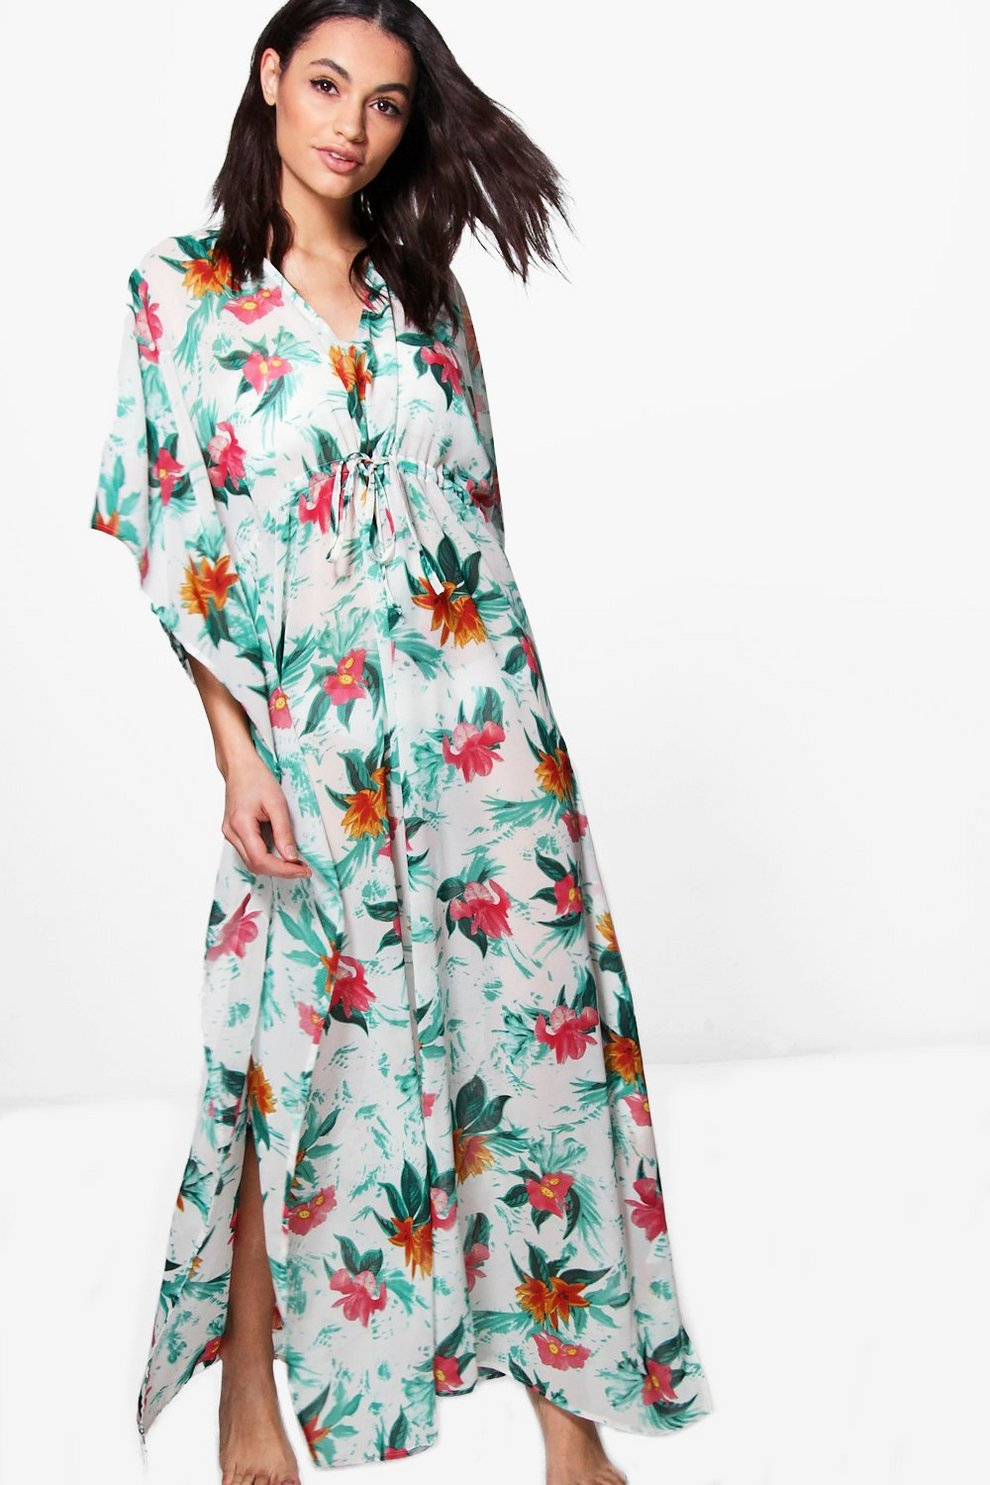 Best Cheap Price Boohoo Tropical Maxi Beach Kimono Best Place Online From China Free Shipping Low Price Recommend Cheap Outlet Latest Collections SPn25rVloN